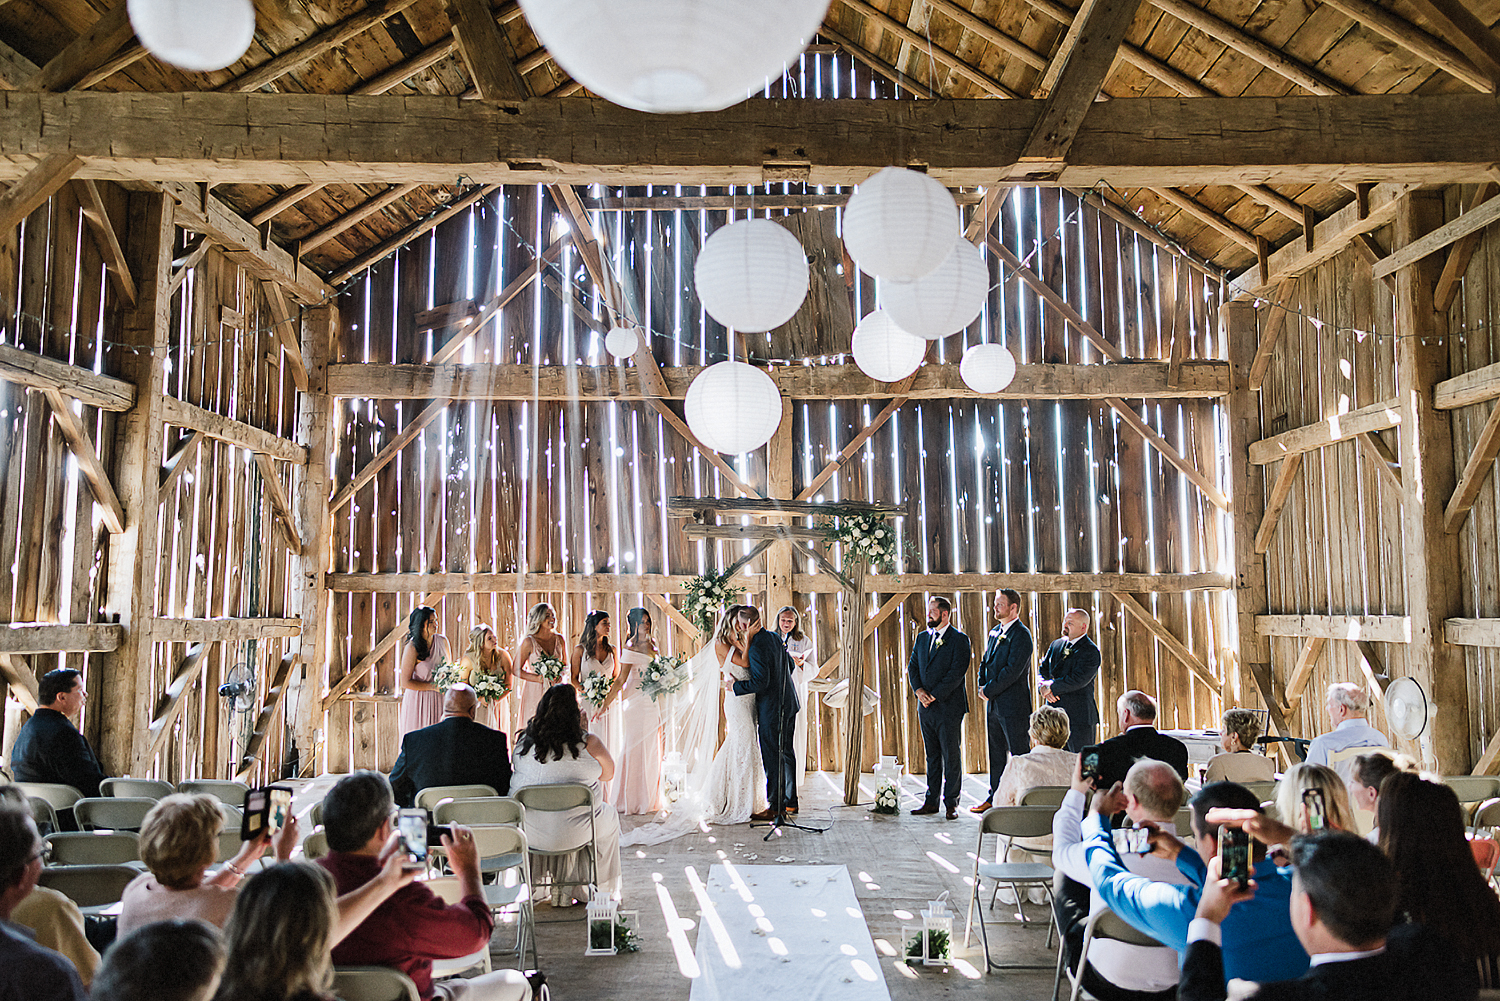 dowswell-barn-wedding-beaverton-best-wedding-photographers-toronto-moody-style-candid-photojounalistic-approach-intimate-vintage-farm-wedding-Farm-wedding-venue-details-ceremony-bride-and-groom-first-kiss.jpg